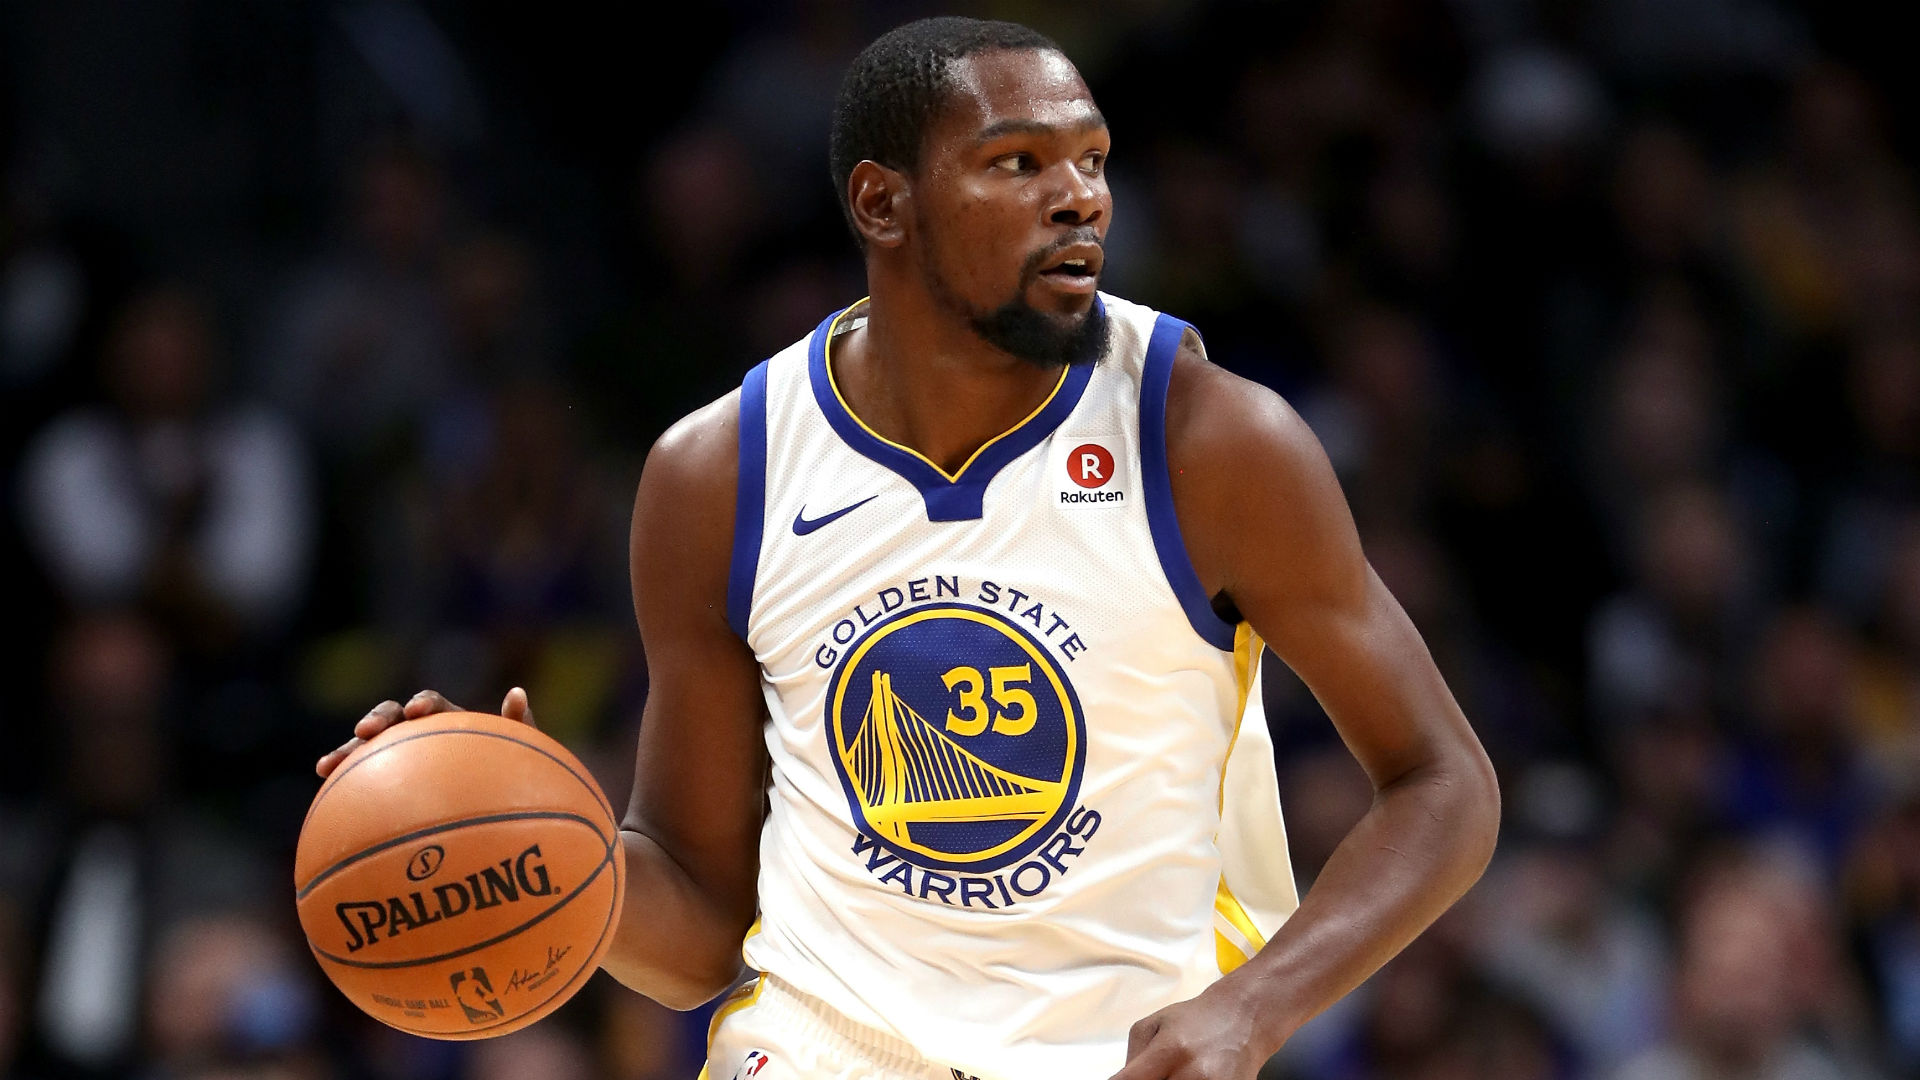 Kevin Durant out Sunday with sprained ankle; rematch looms with OKC Wednesday